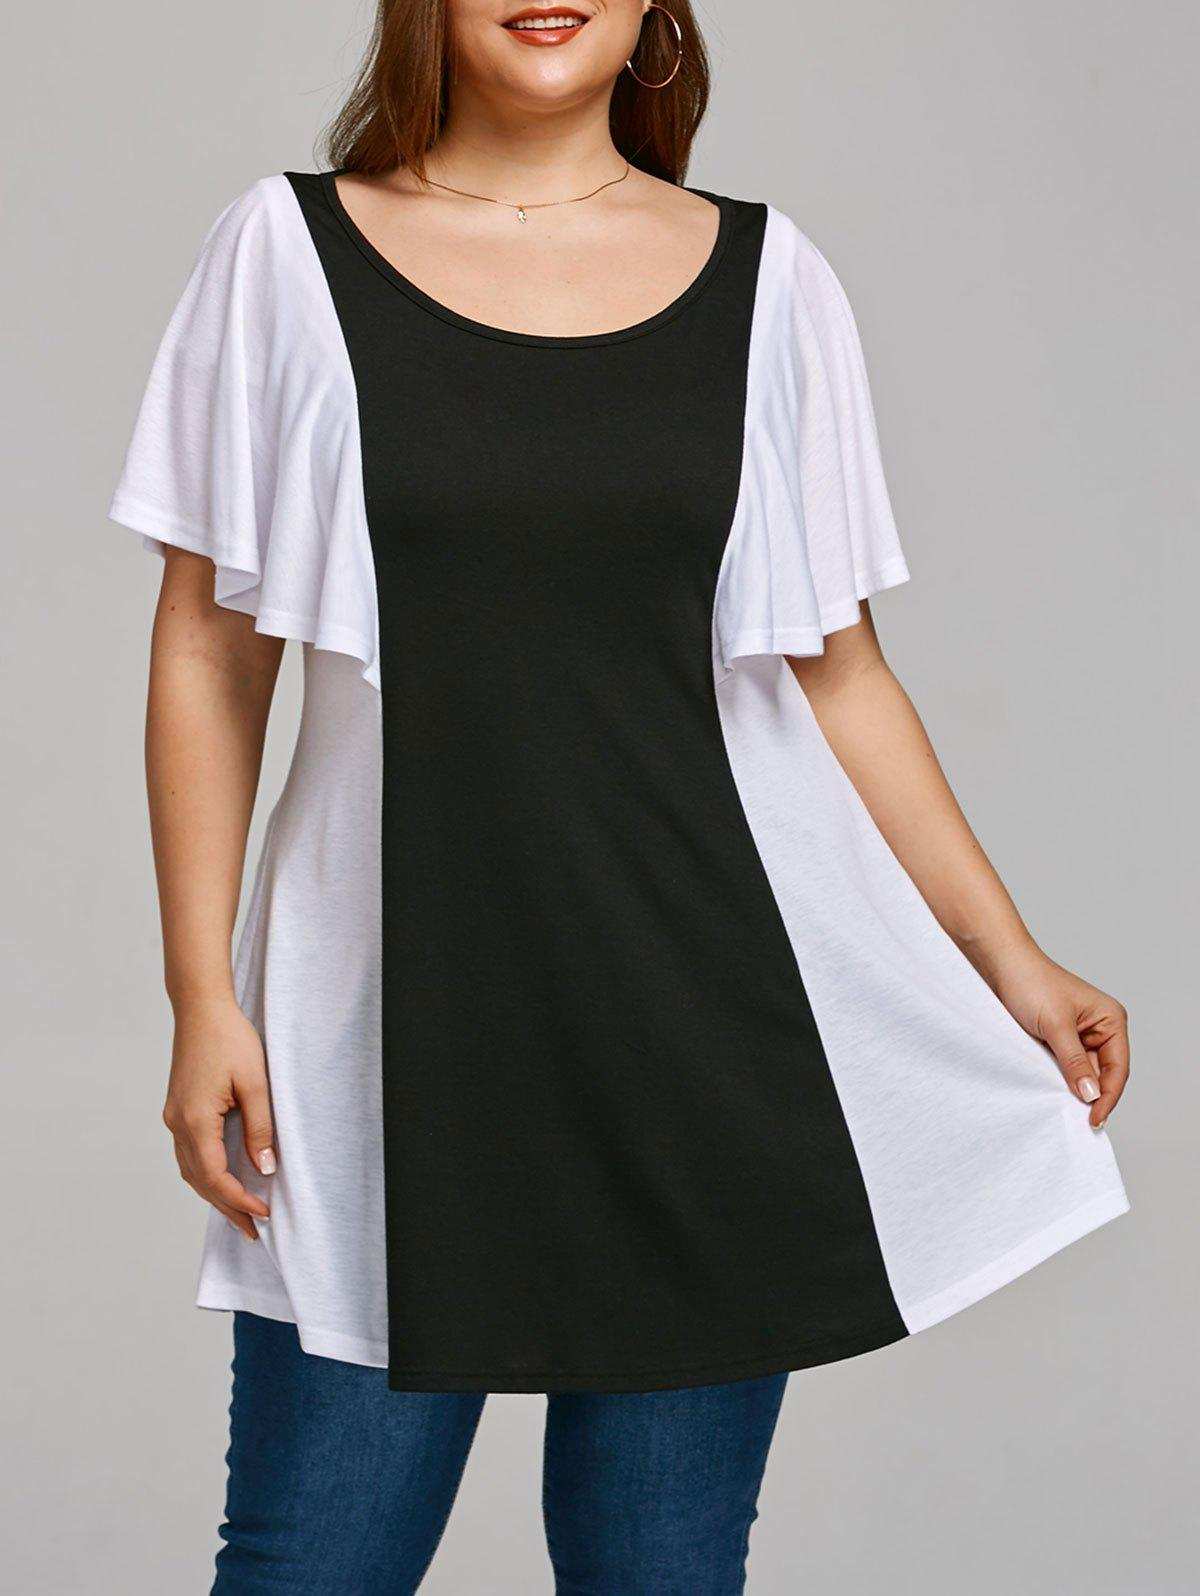 Color Block Plus Size Tunic T-shirt - BLACK WHITE 3XL